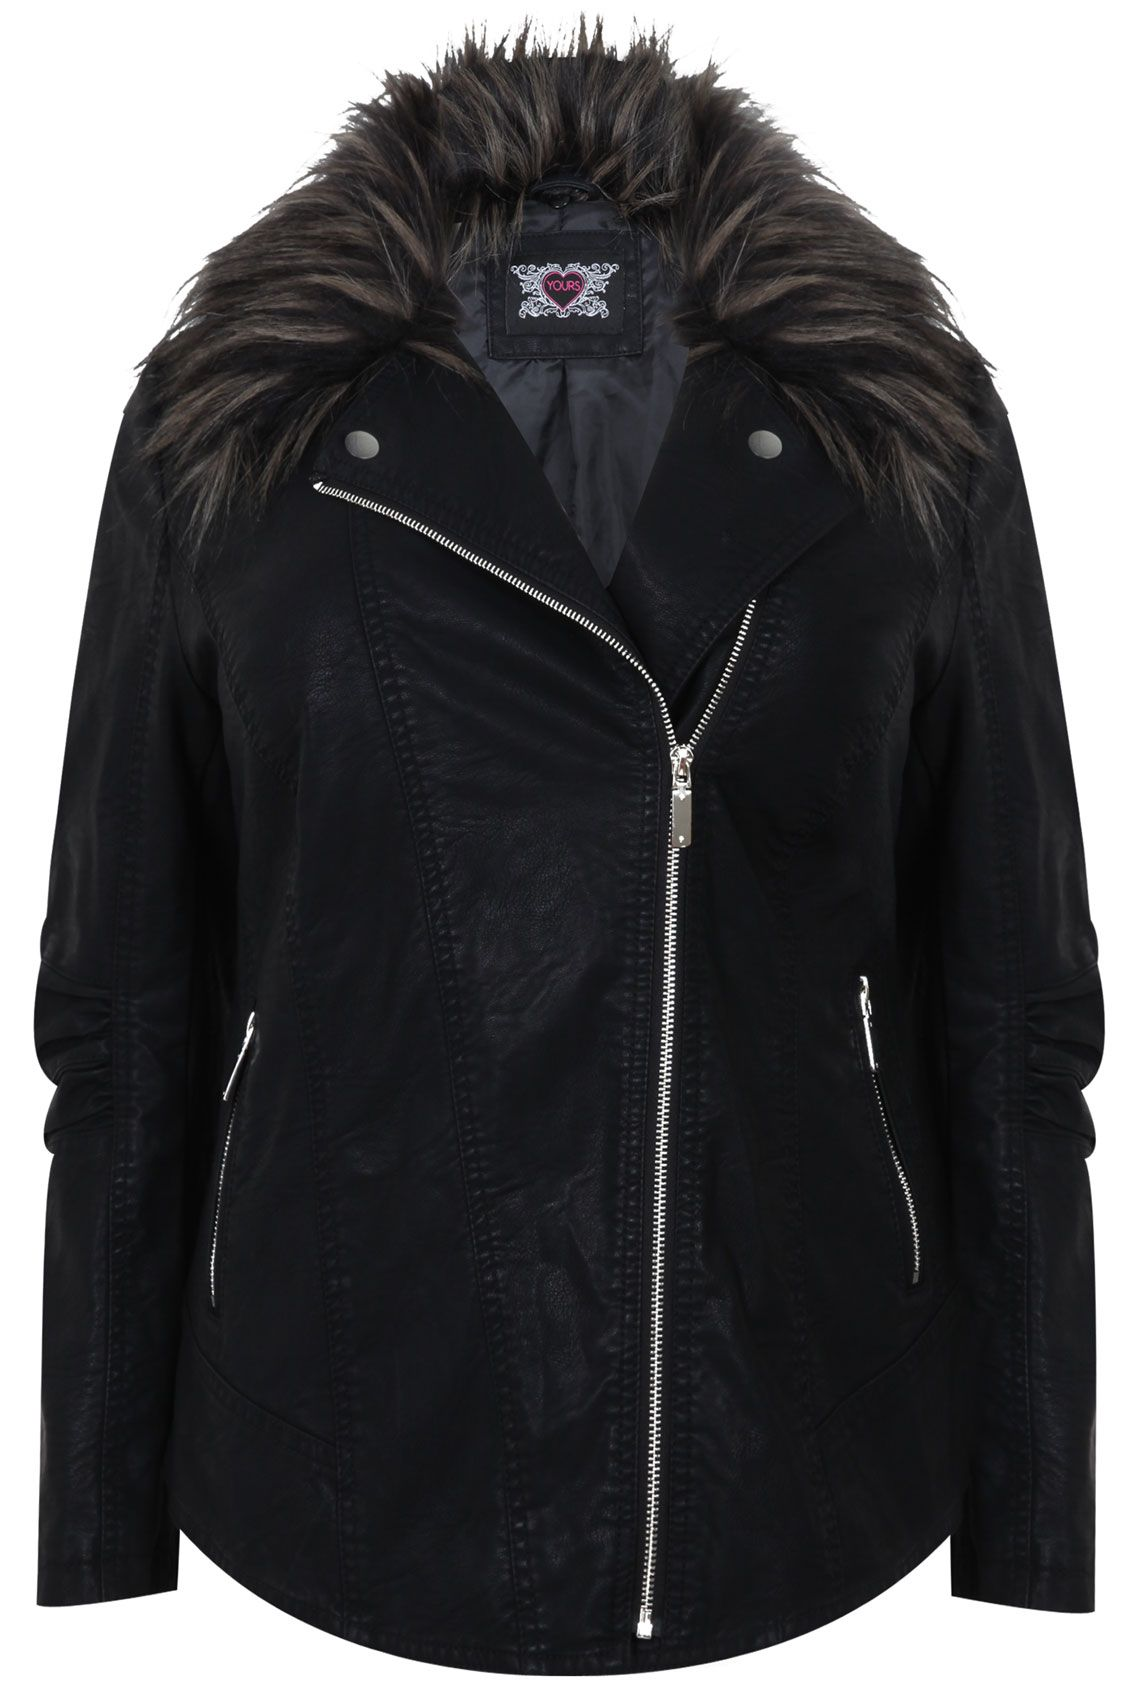 Black Faux Leather & Fur Jacket Jackets, Faux leather